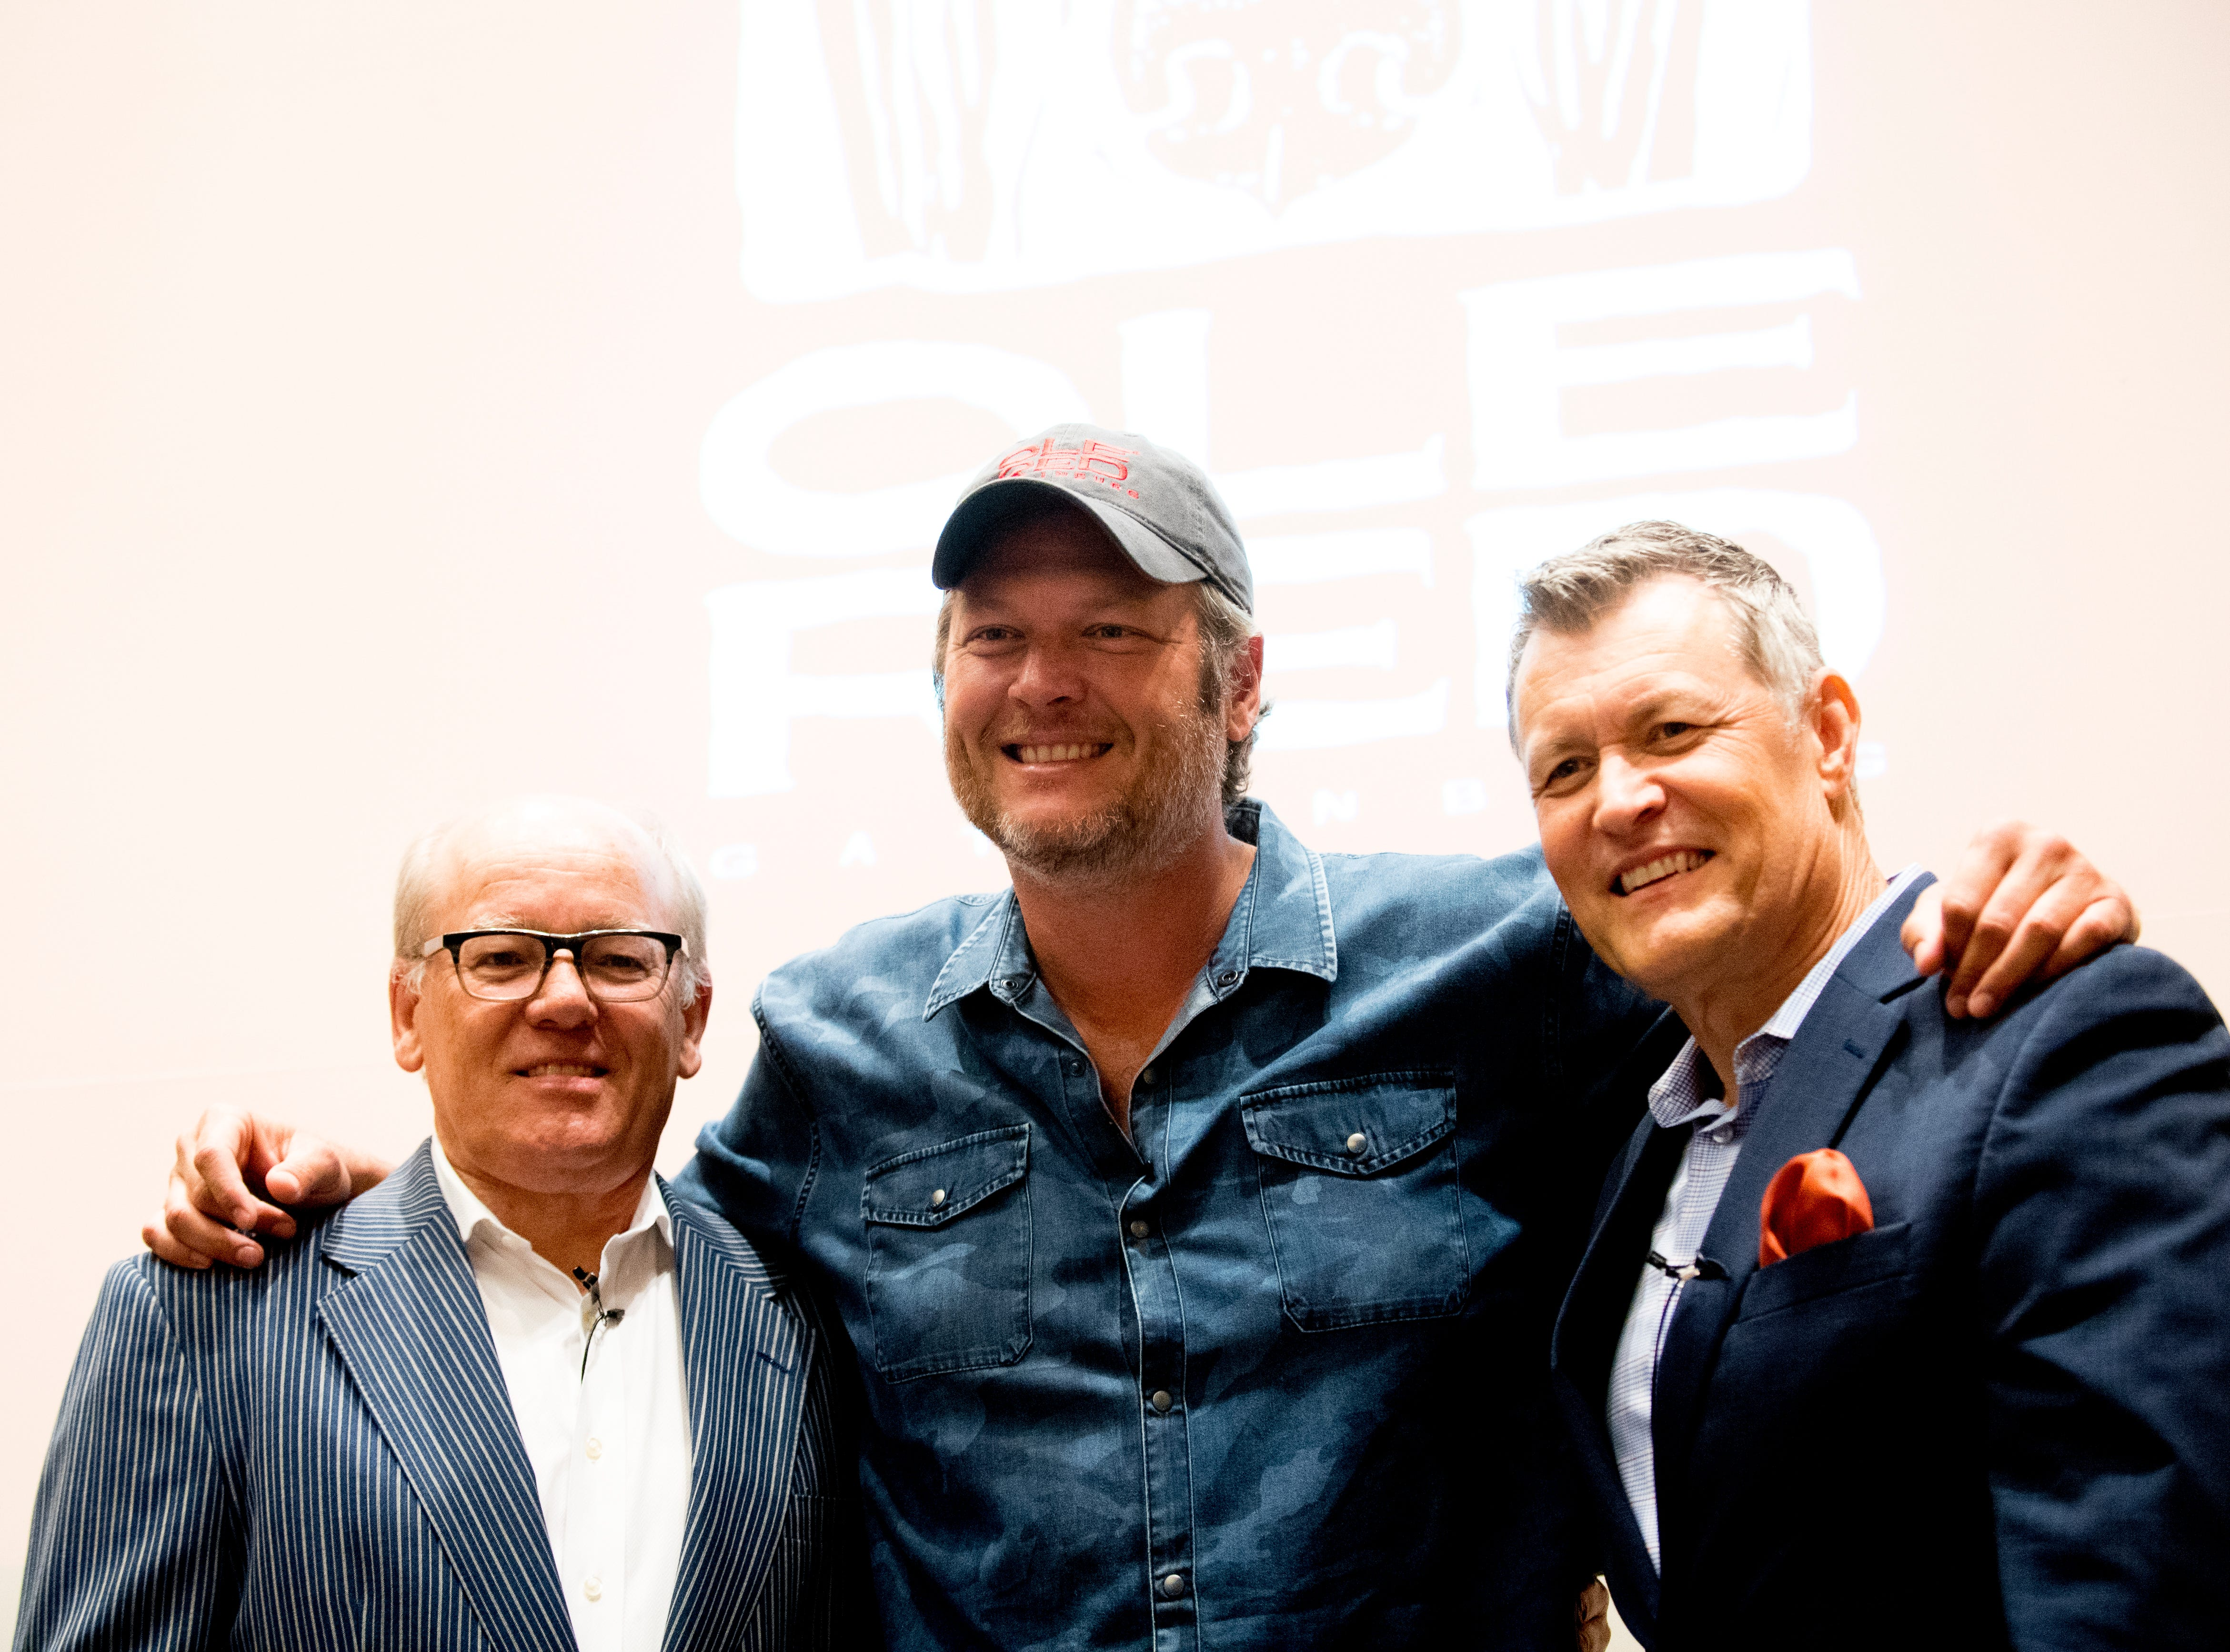 From left, Collin Reed, CEO of Ryman Hospitality, Country singer Blake Shelton and radio host Bill Cody take a photo on stage during an announcement ceremony for Ole Red Gatlinburg in Gatlinburg, Tennessee on Tuesday, September 18, 2018. Shelton has partnered with Ryman Hospitality to bring Ole Red to Gatlinburg. The 13,500 square-foot entertainment venue with a two-story bar, restaurant and performance space with space for 325 patrons is slated to open spring 2019.